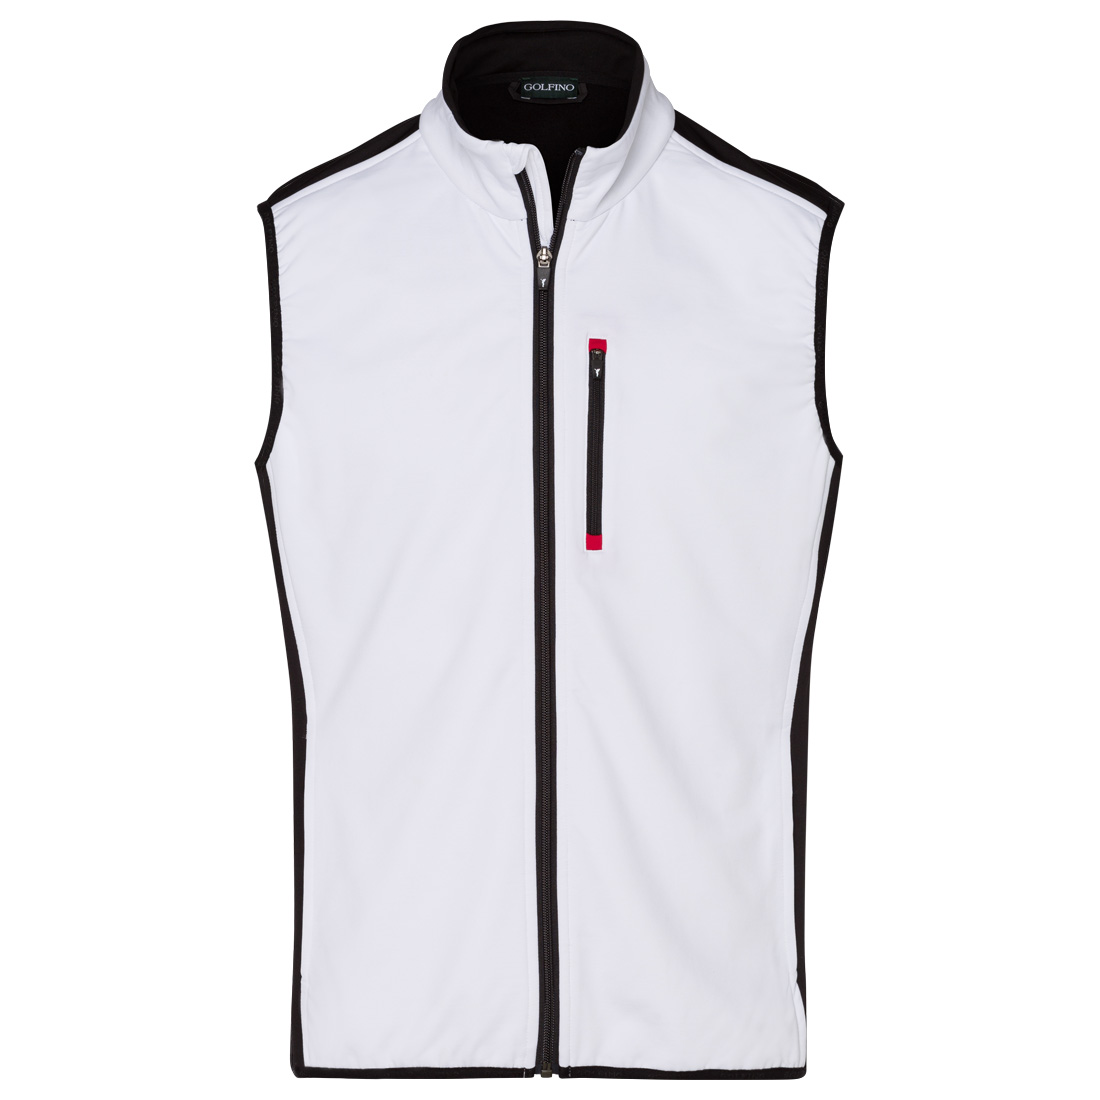 Men's techno stretch gilet for cooler days